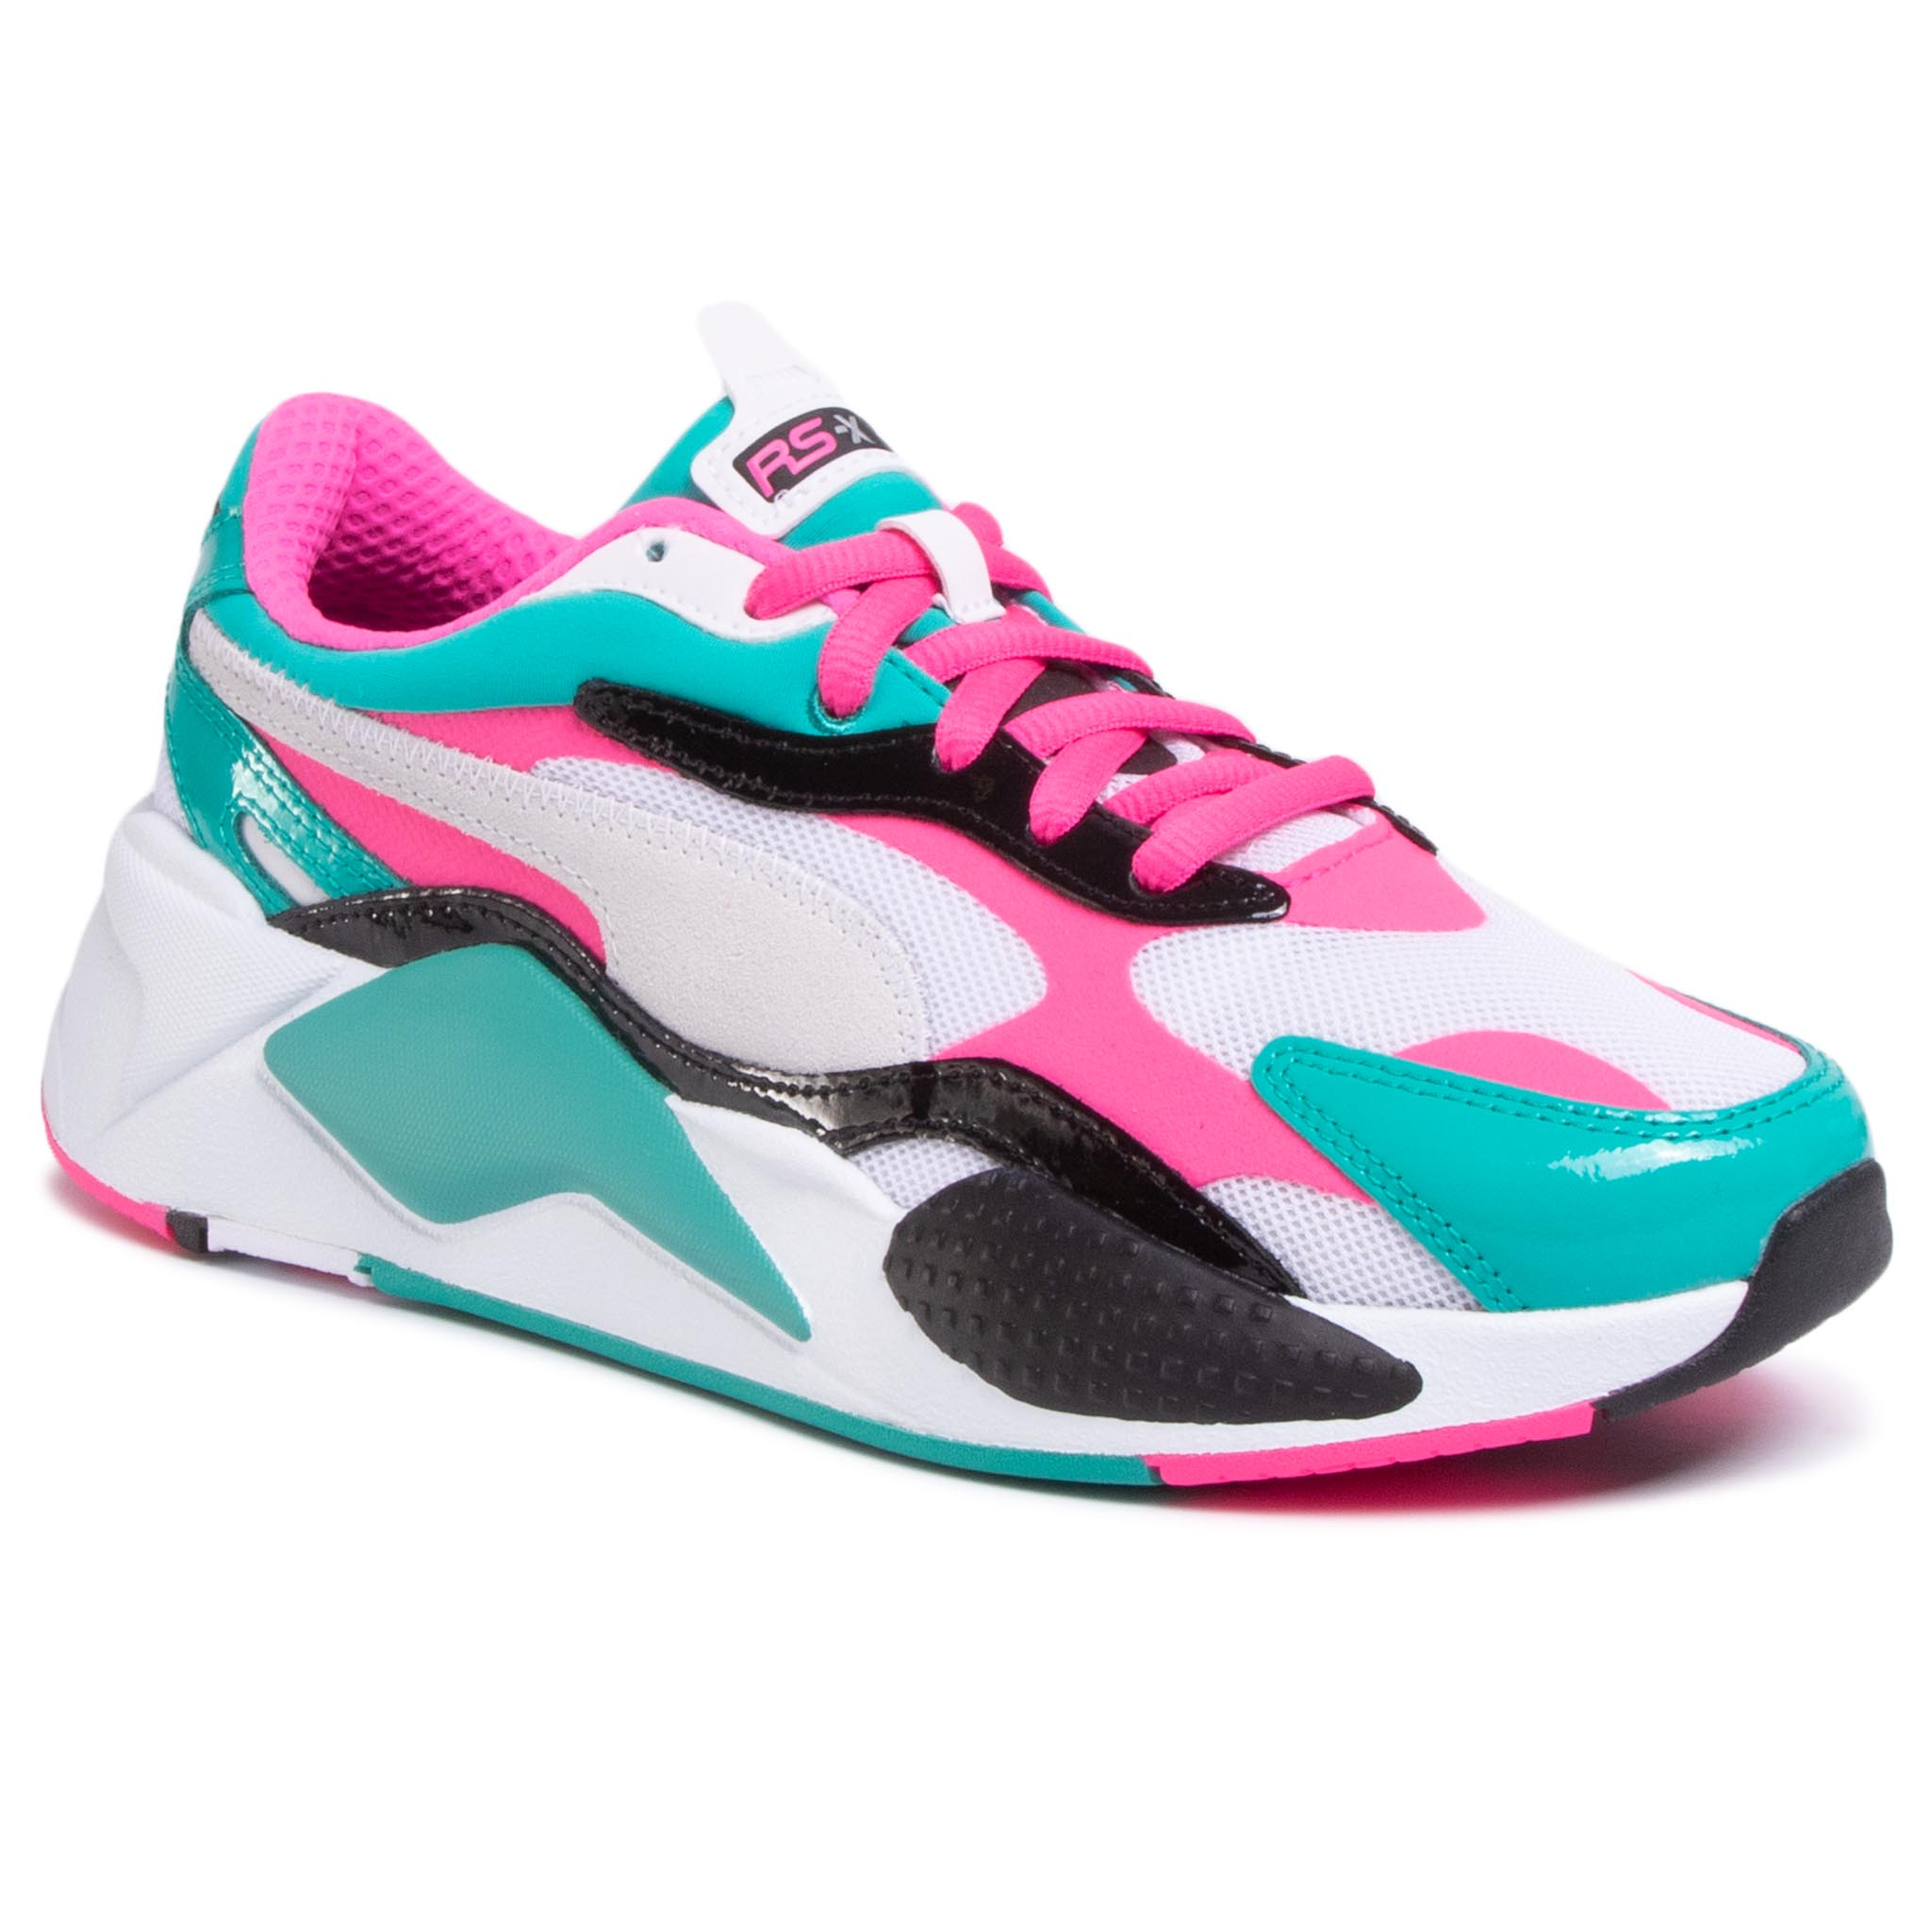 Sneakers PUMA - RS-X³ Plastic 371569 04 Puma White/Fluo Pink